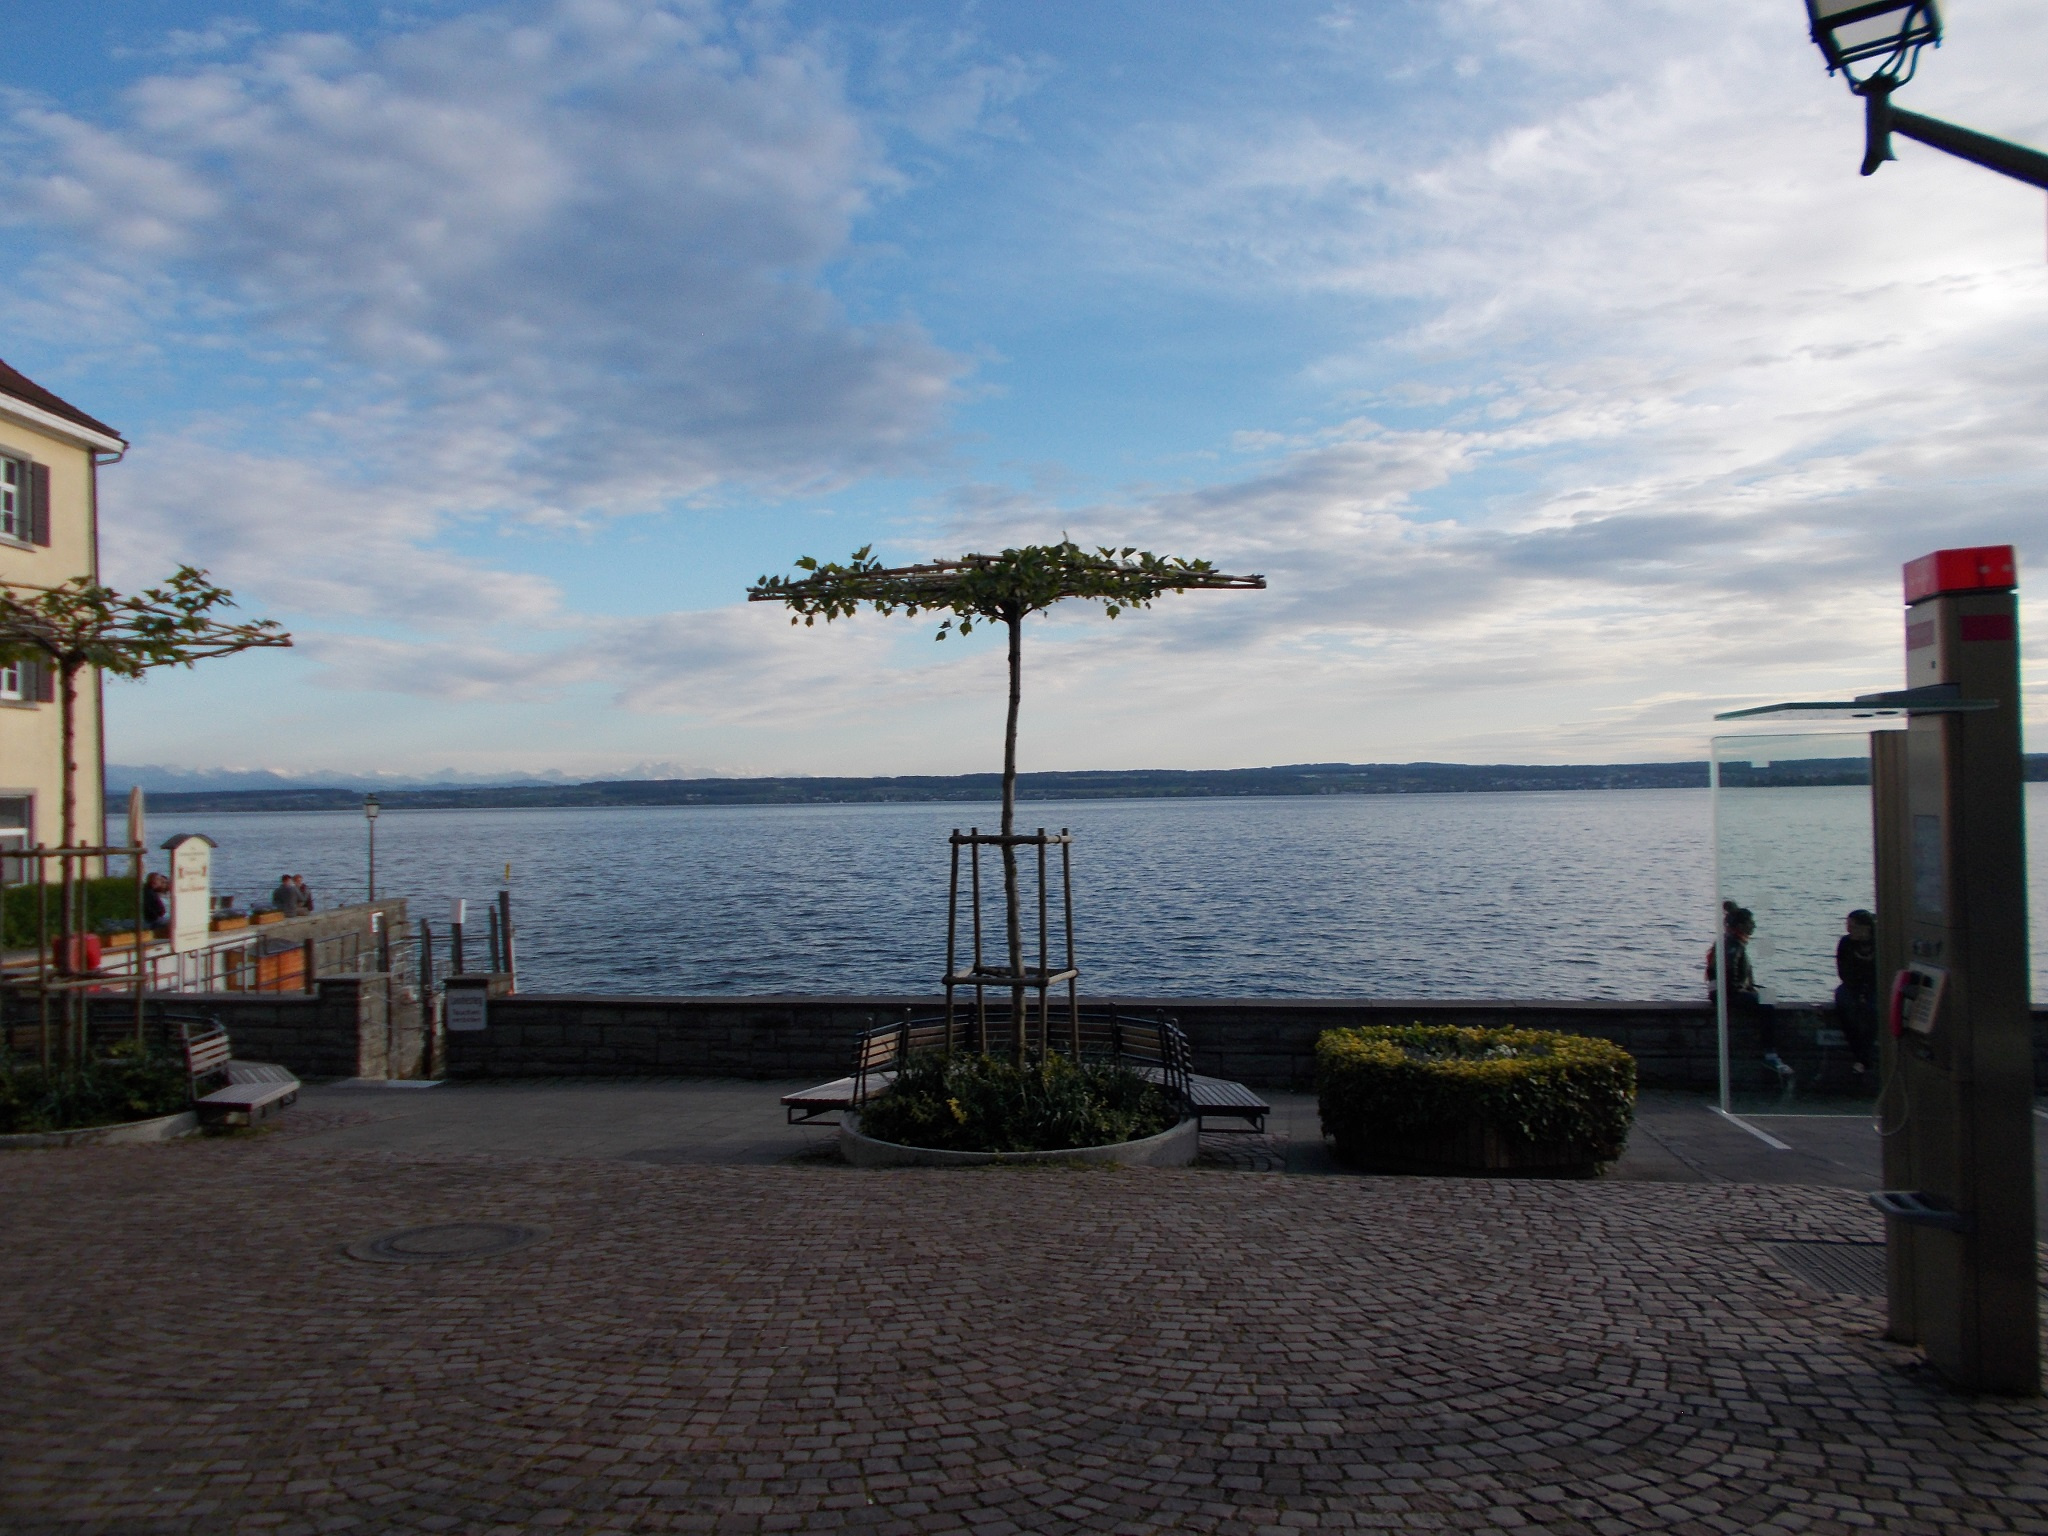 A wide shot looking out of a large lake with a decorative tree in the foreground taken in Meersburg, Germany.